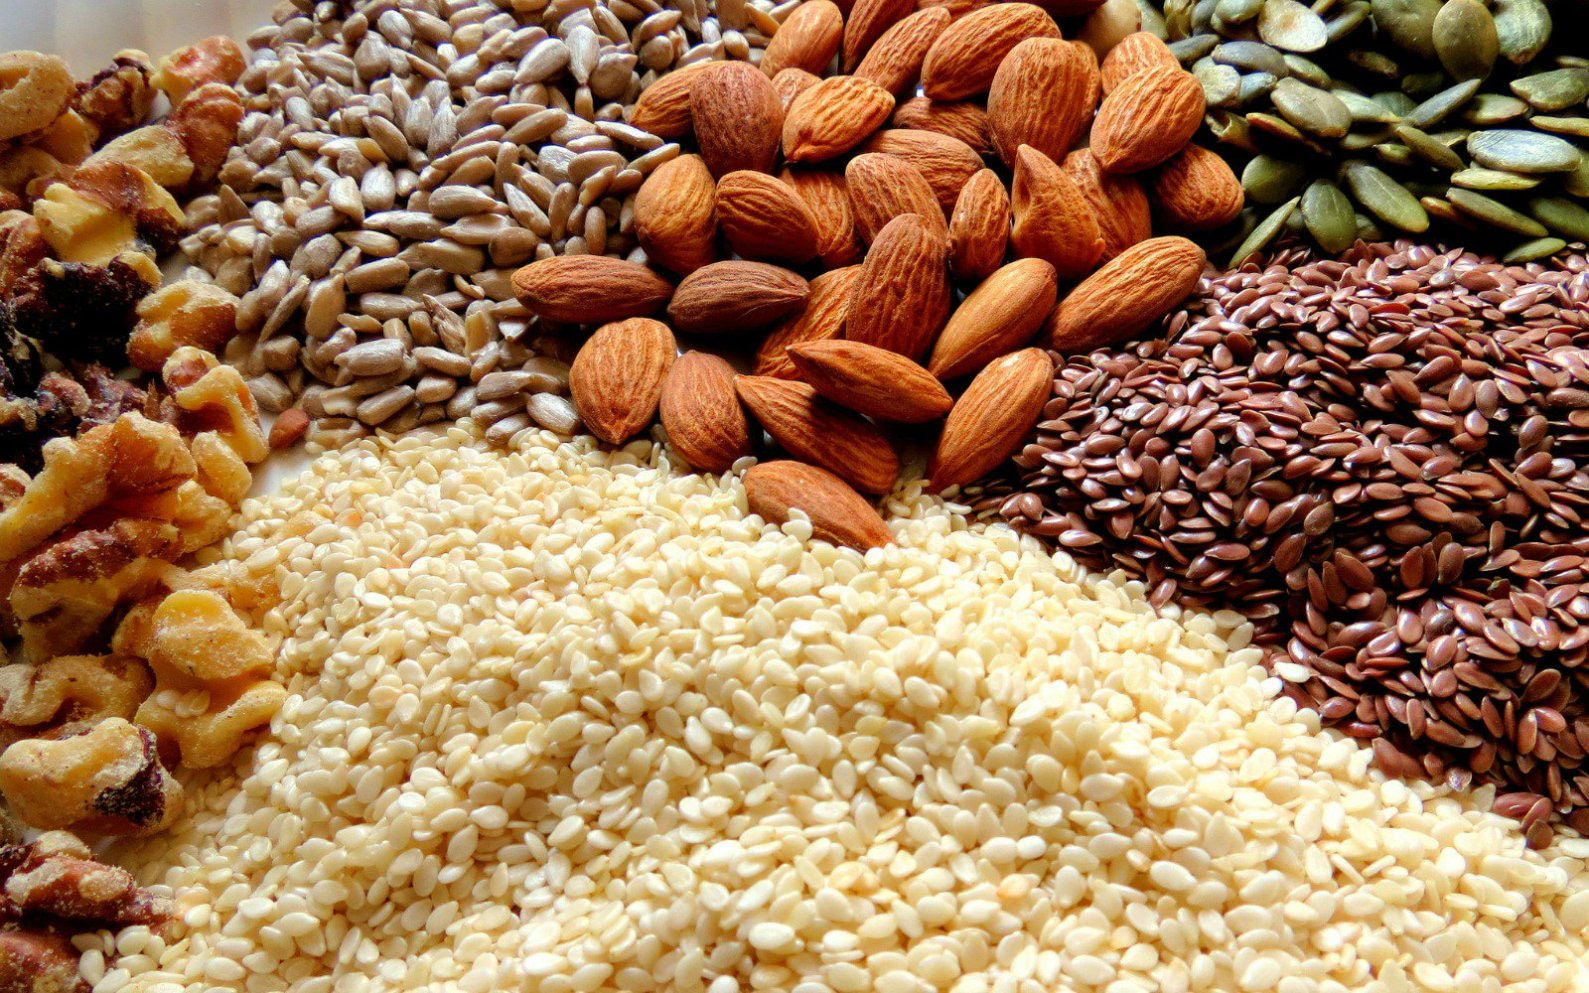 Nuts and seeds are one of the best cancer-fighting foods.